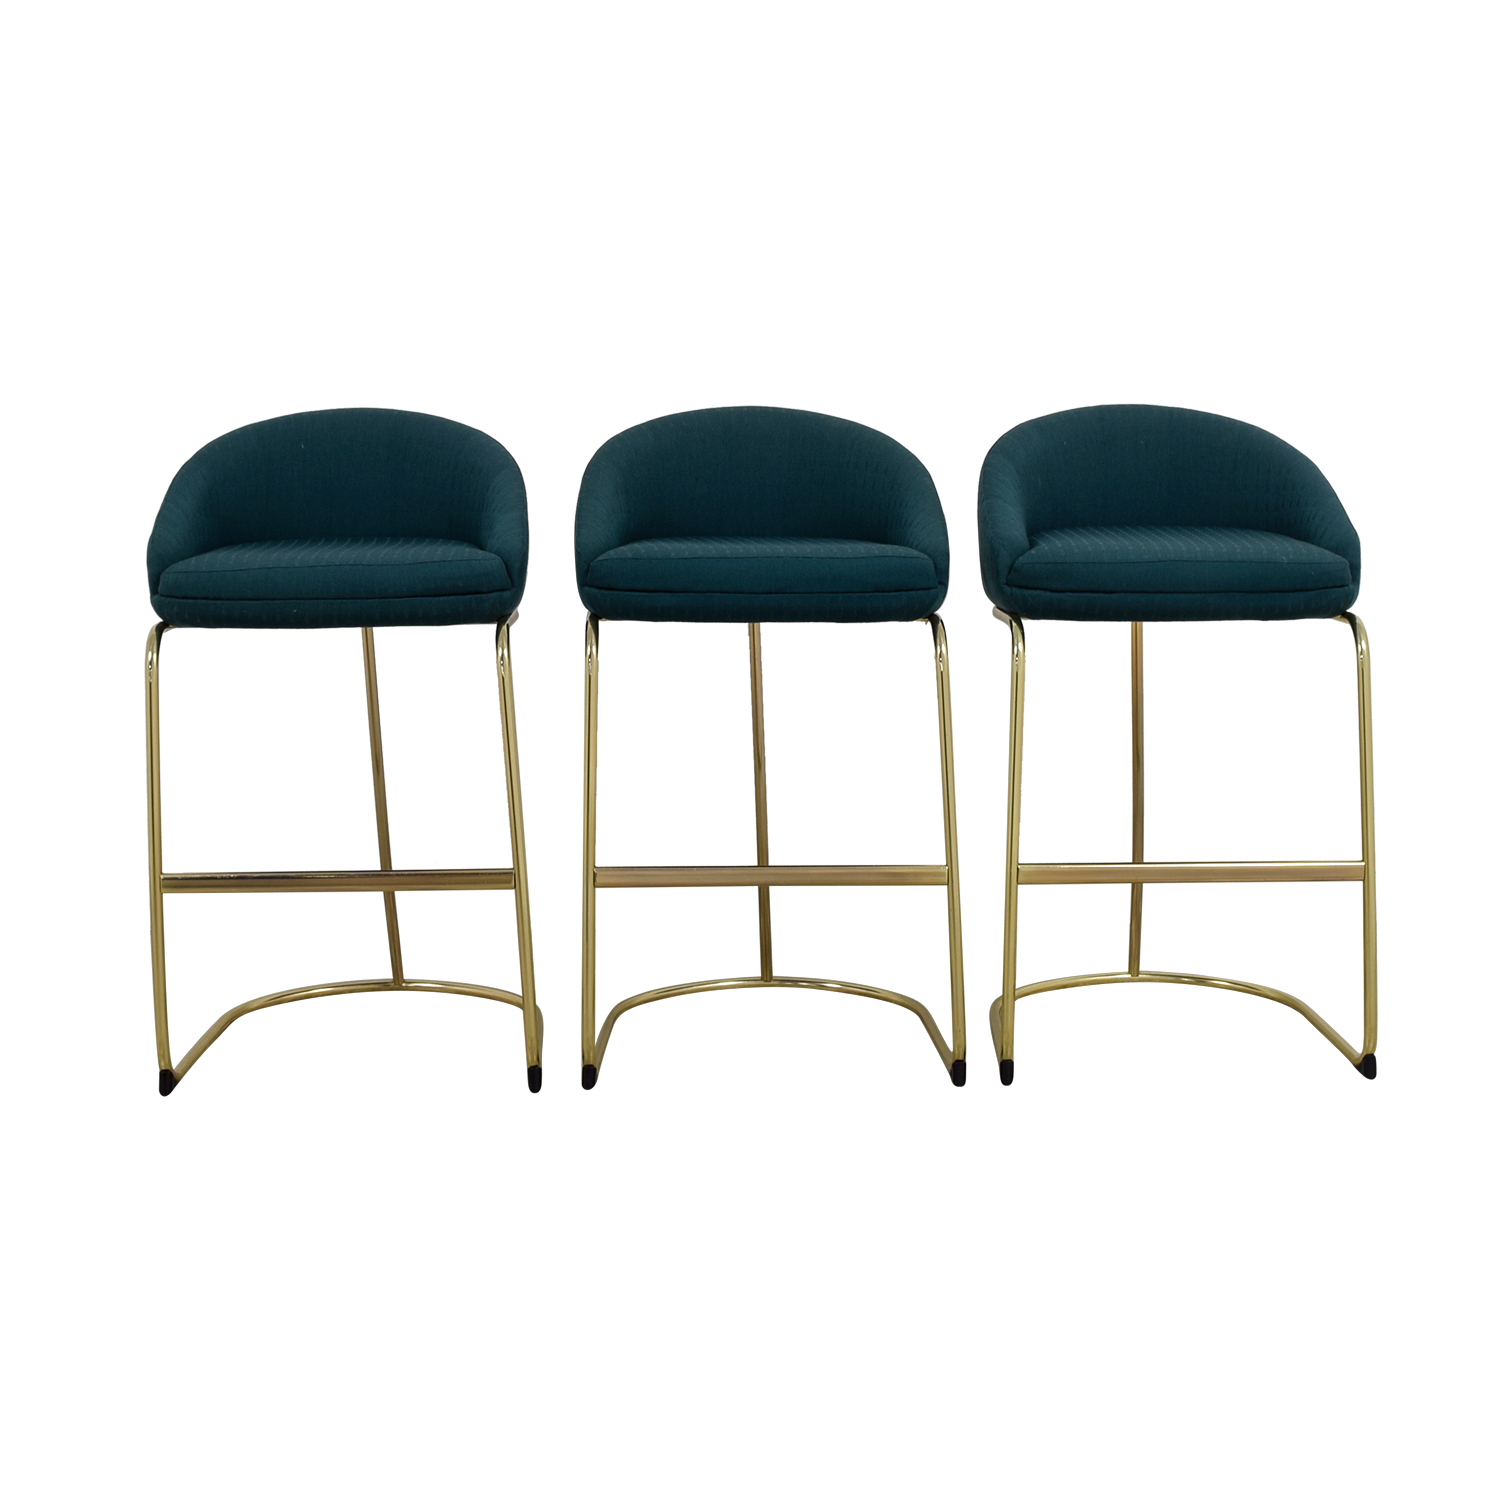 Upholstered Bar Chairs 57 Off Vintage Teal Upholstered Bar Stools Chairs